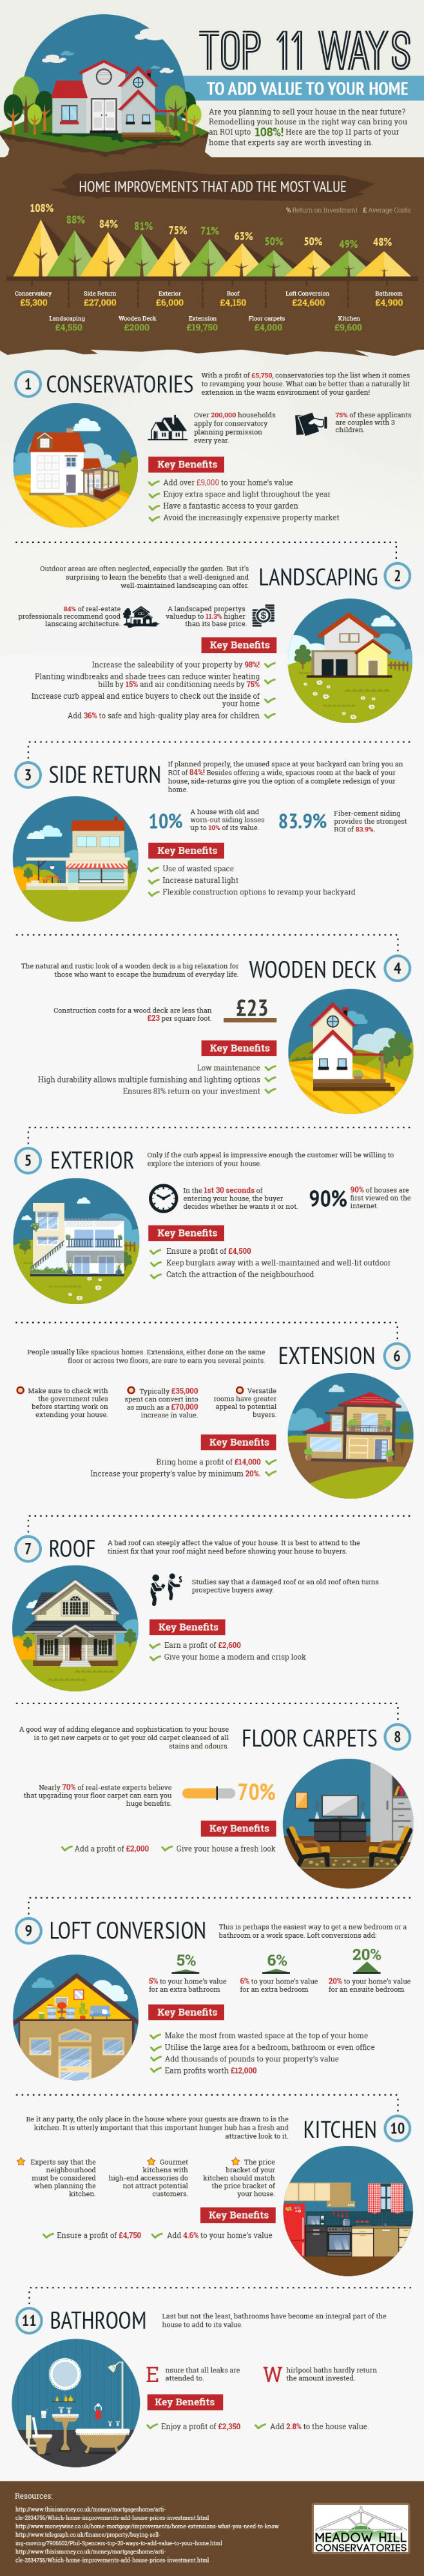 Add Value To Your Home [Infographic]